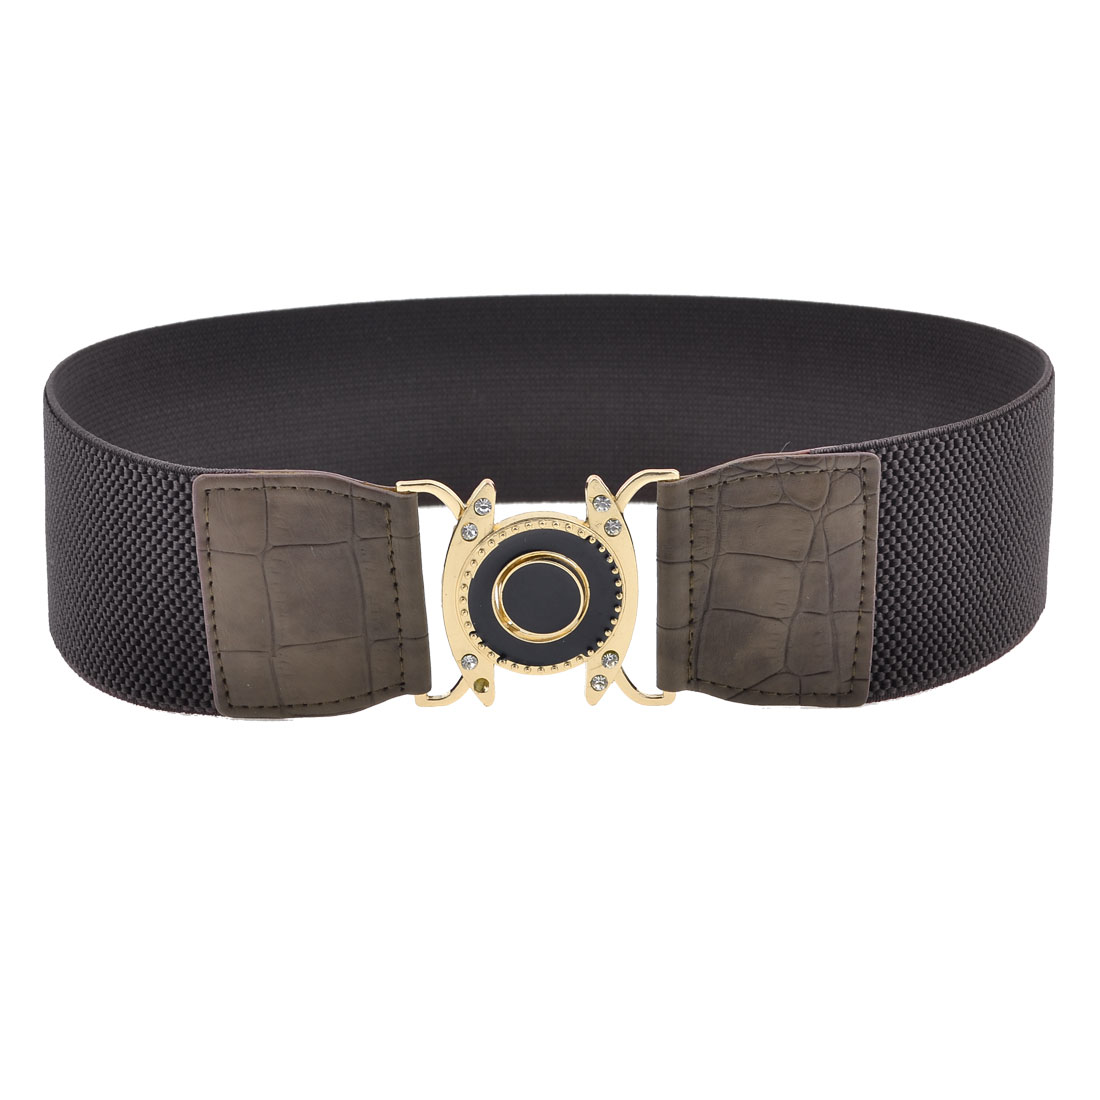 Dark Brown Interlocking Buckle Stretchy Cinch Waist Belt for Women